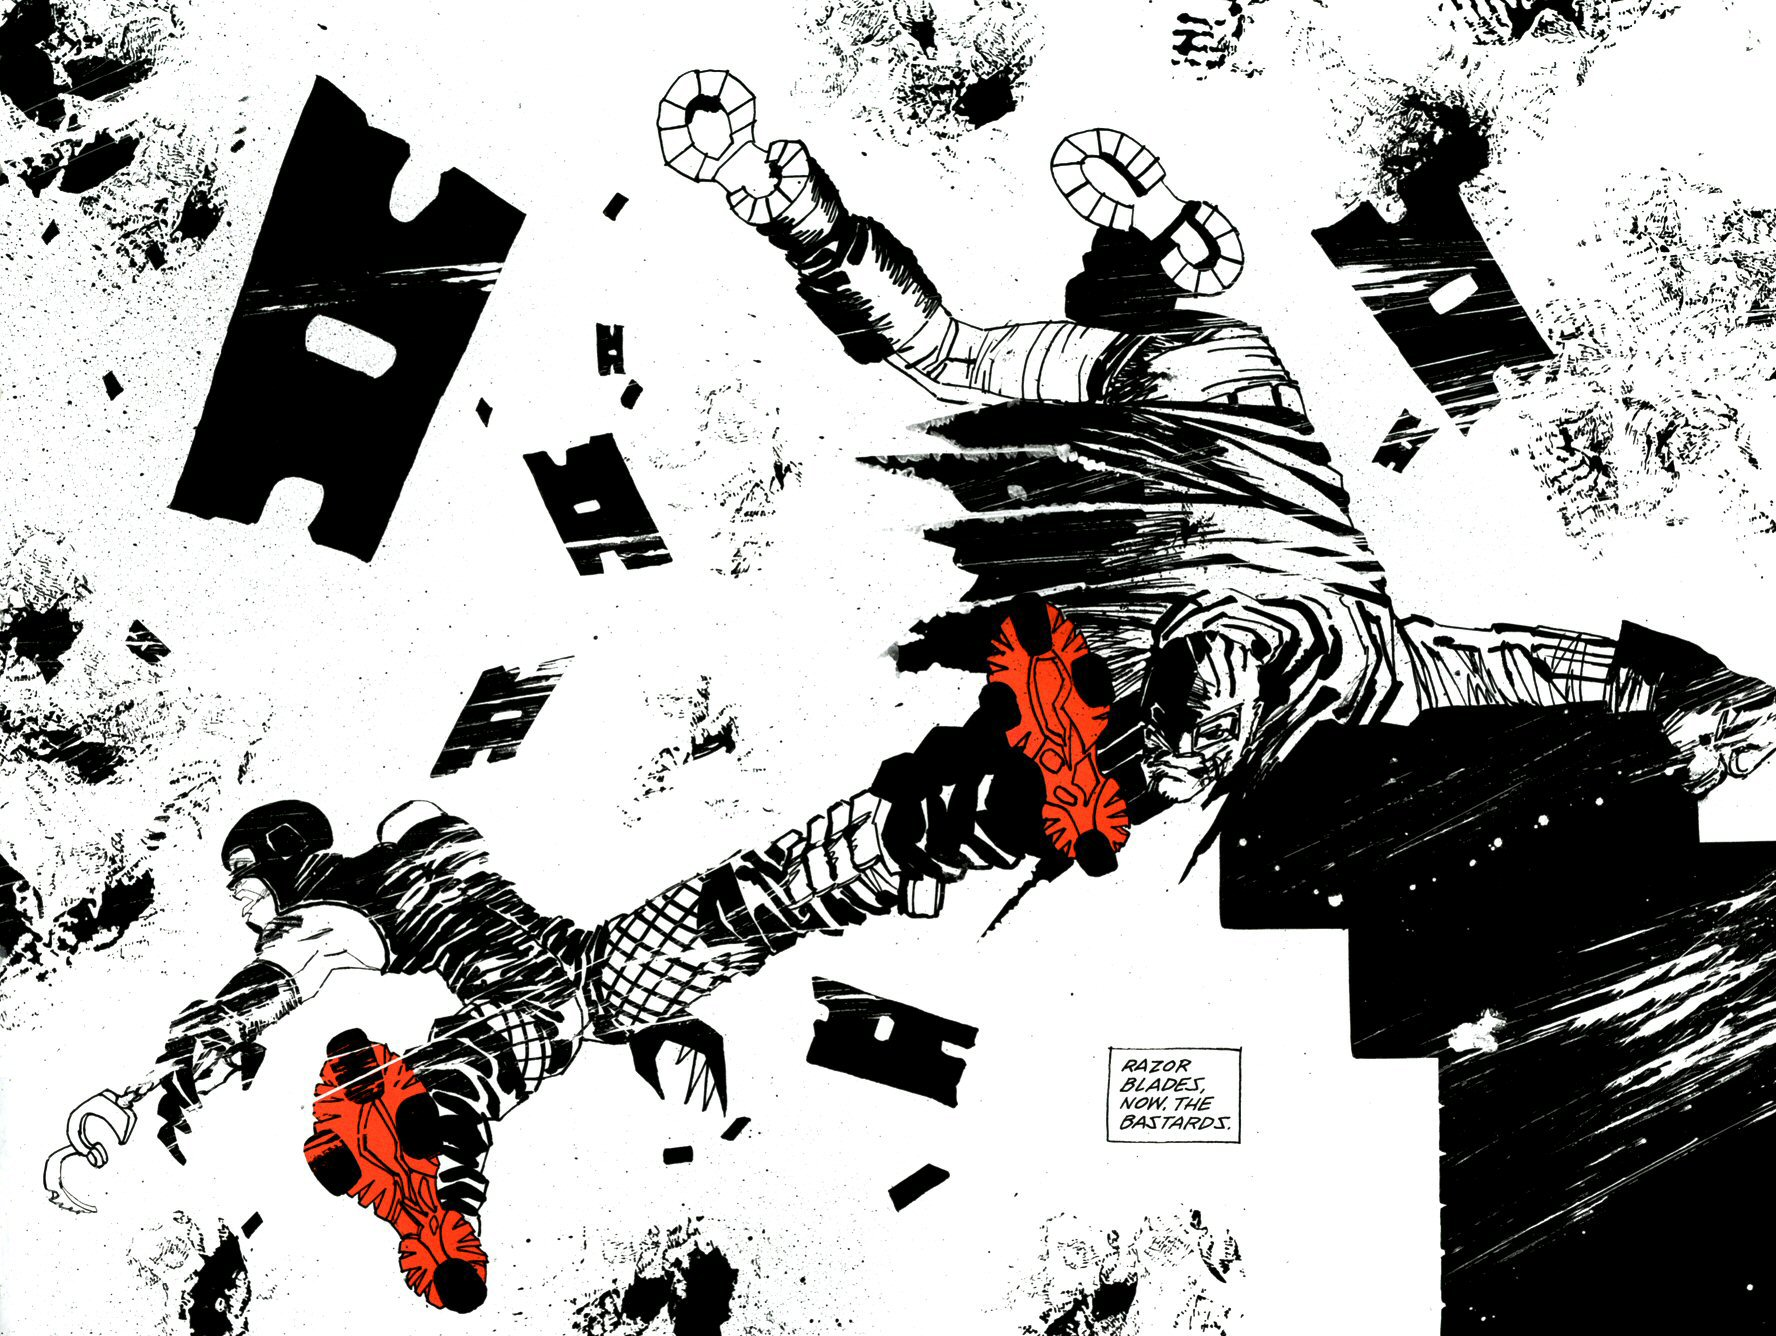 Read online Frank Miller's Holy Terror comic -  Issue # TPB - 50